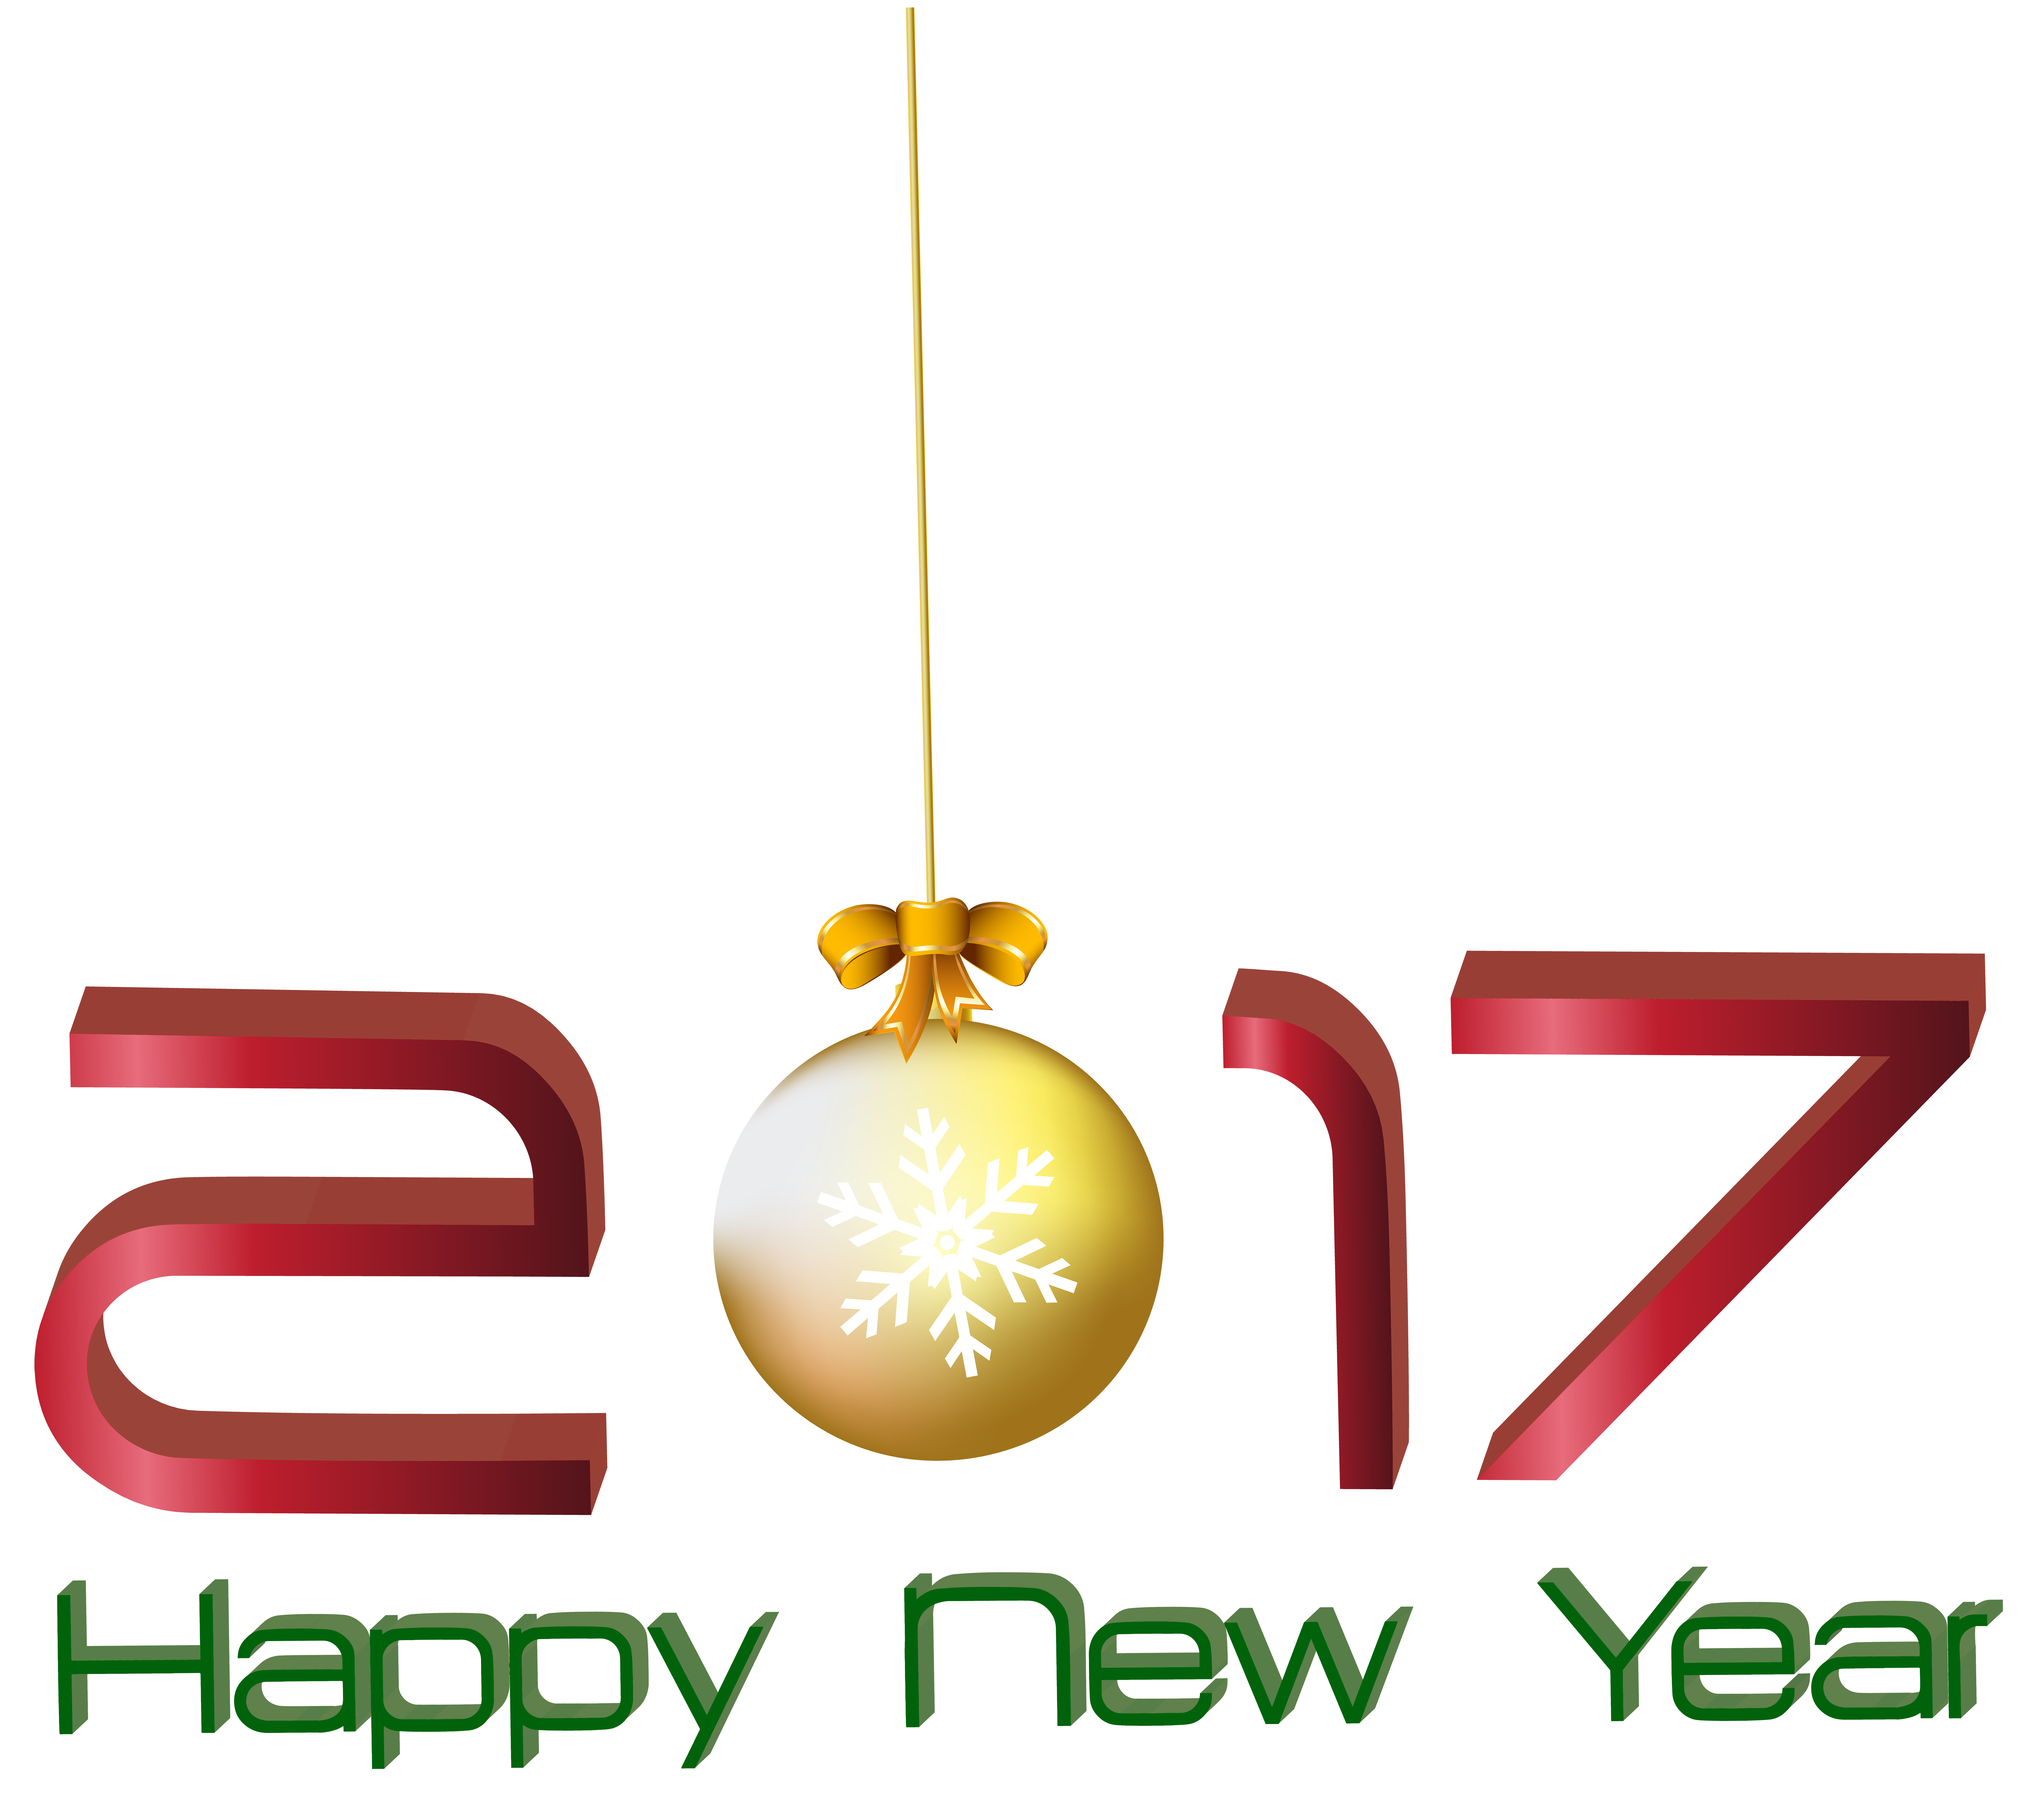 2017 New Year Png - 2017 Happy New Year Transparent PNG Clip Art Image | Gallery ...